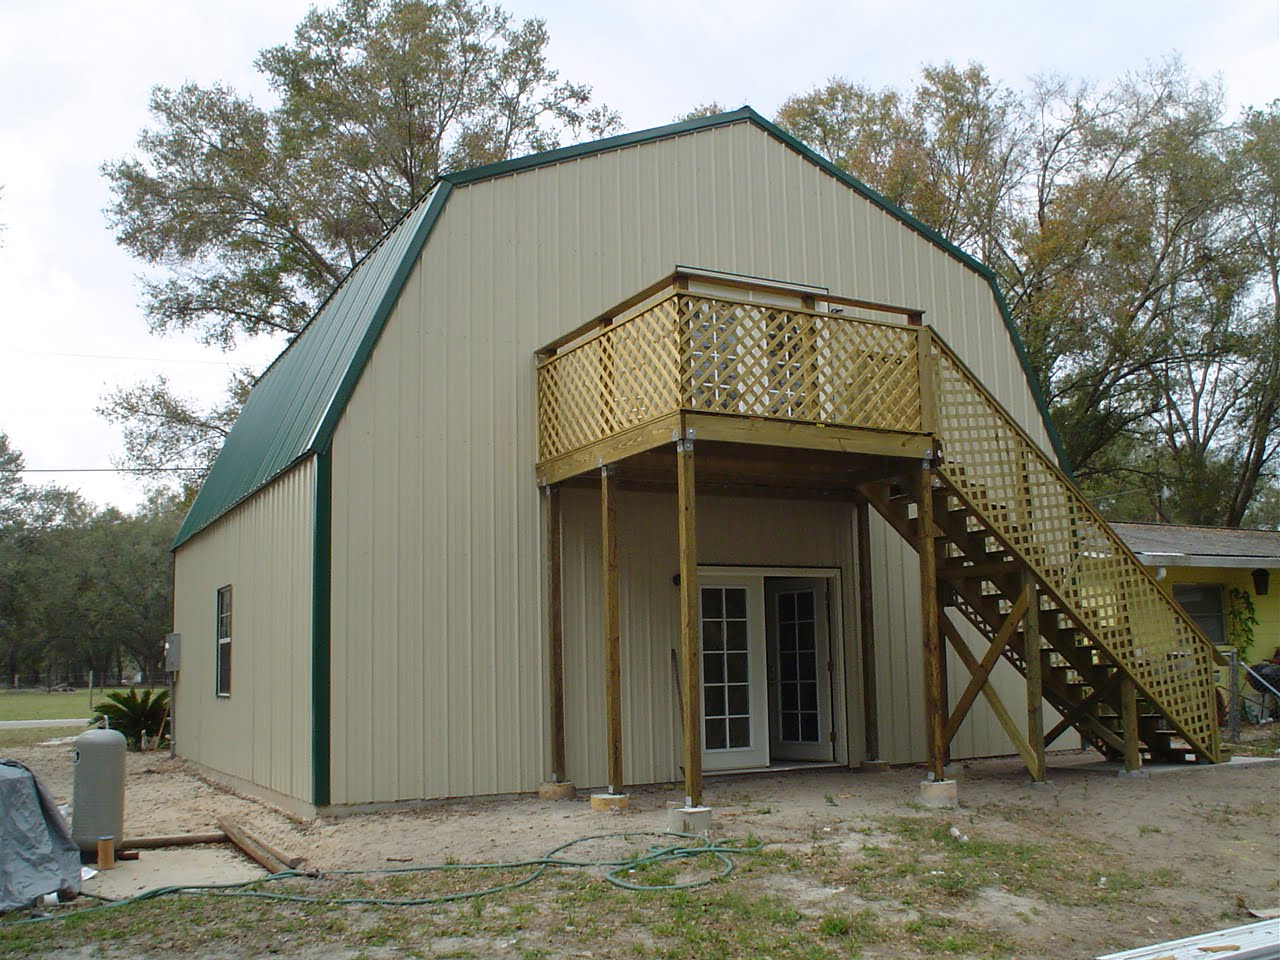 Steel frame gambrel type homes starting from 19 950 hq for Small metal homes for sale